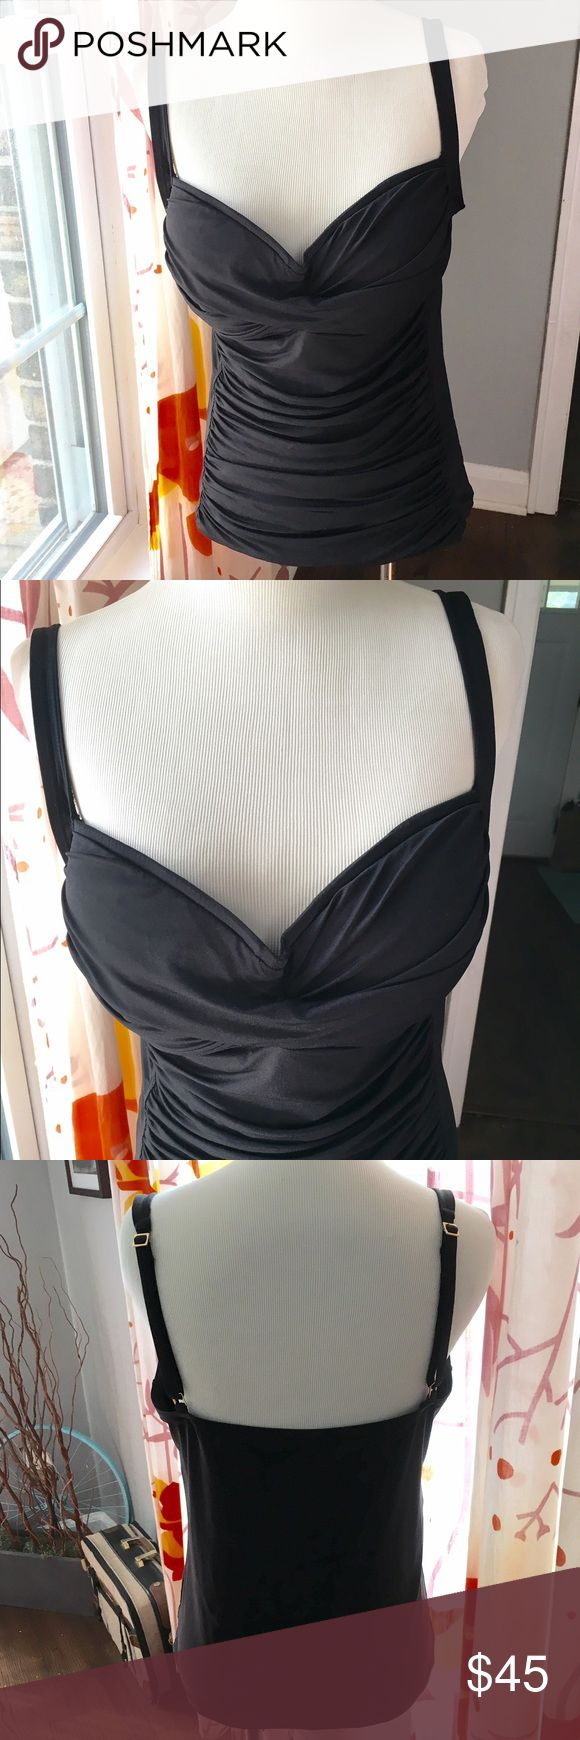 La Blanca slimming tankini, size 14, black La Blanca slimming tankini, size 14, black m, top only, beautiful. Great condition, adjustable straps. Purchased at Nordstroms La Blanca Swim